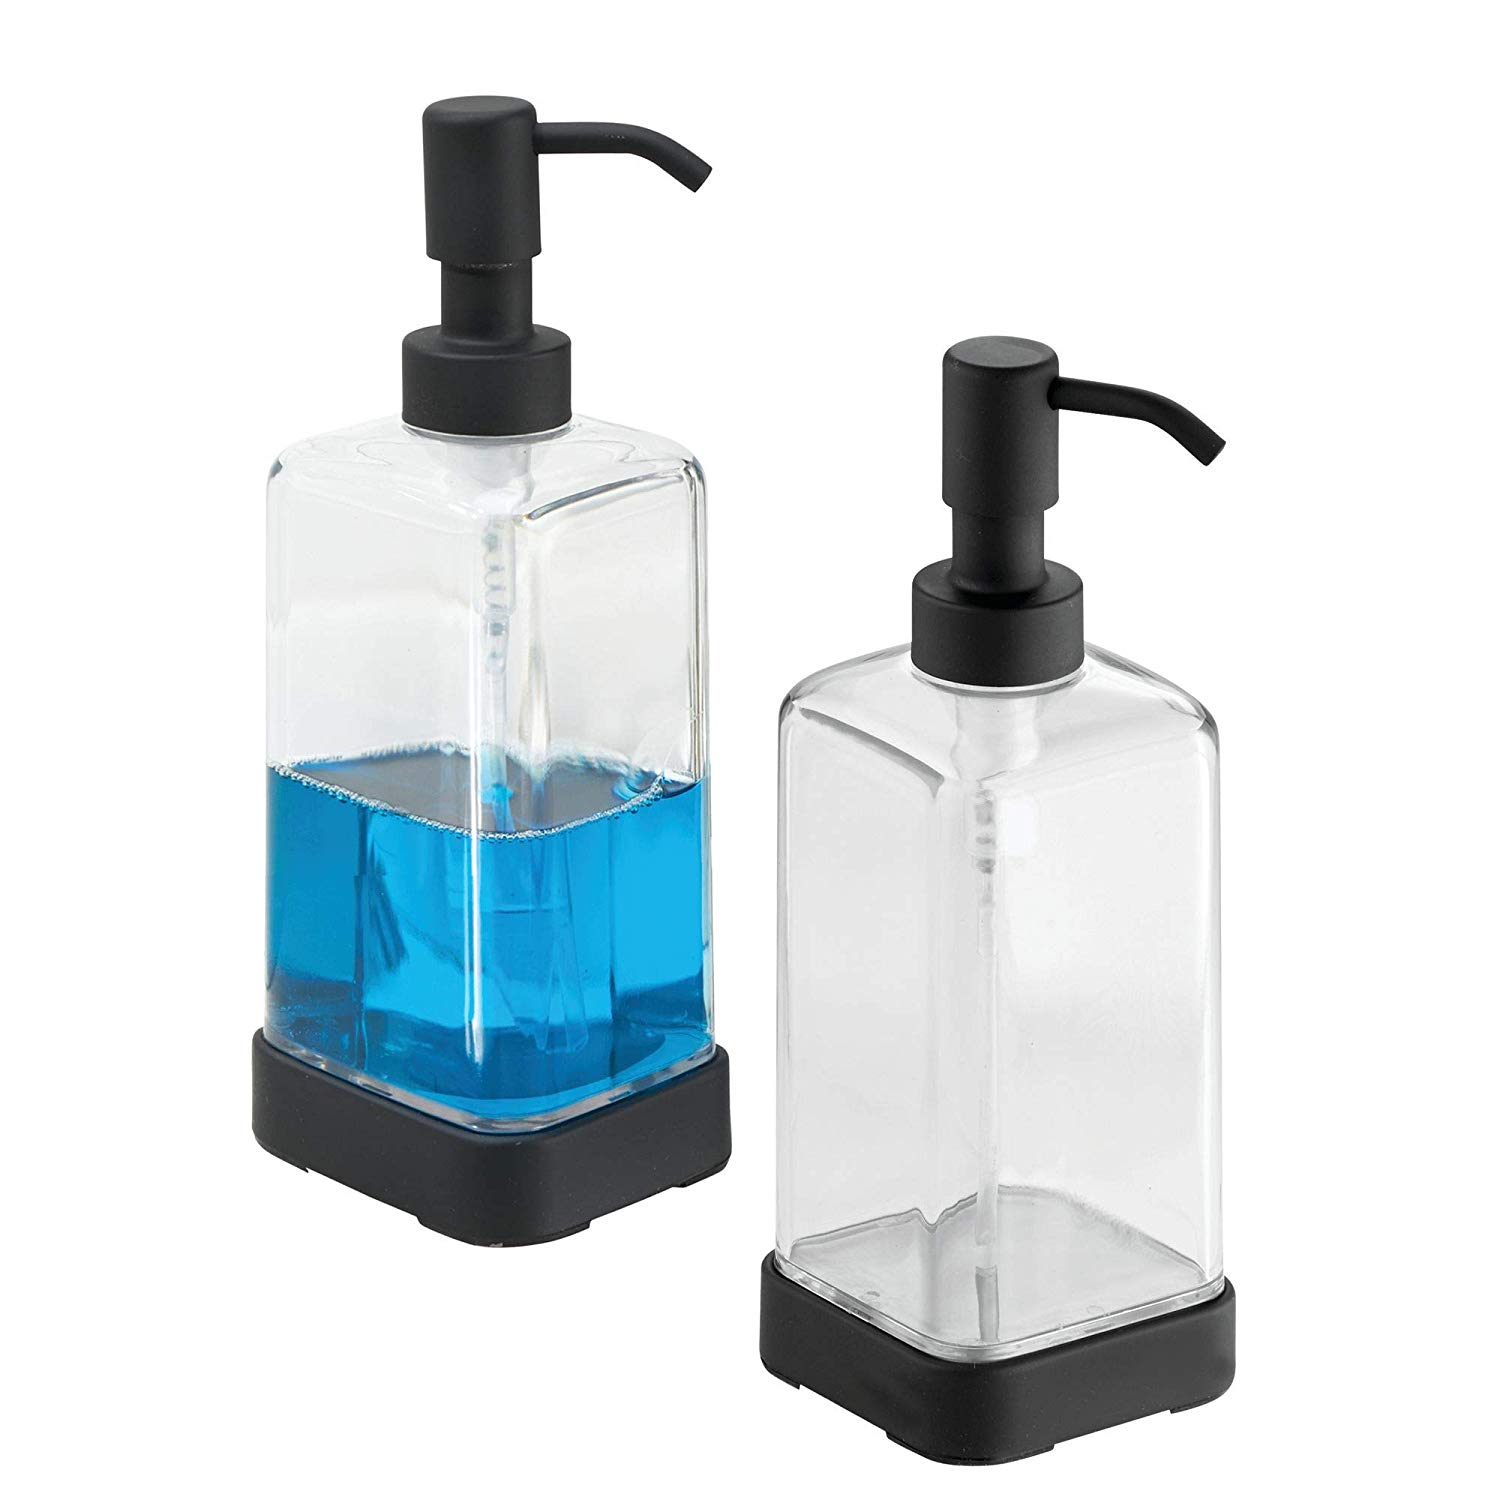 ef7656e7de69 Cheap Cheap Black Resin Soap Dispenser Pump, find Cheap Black Resin ...